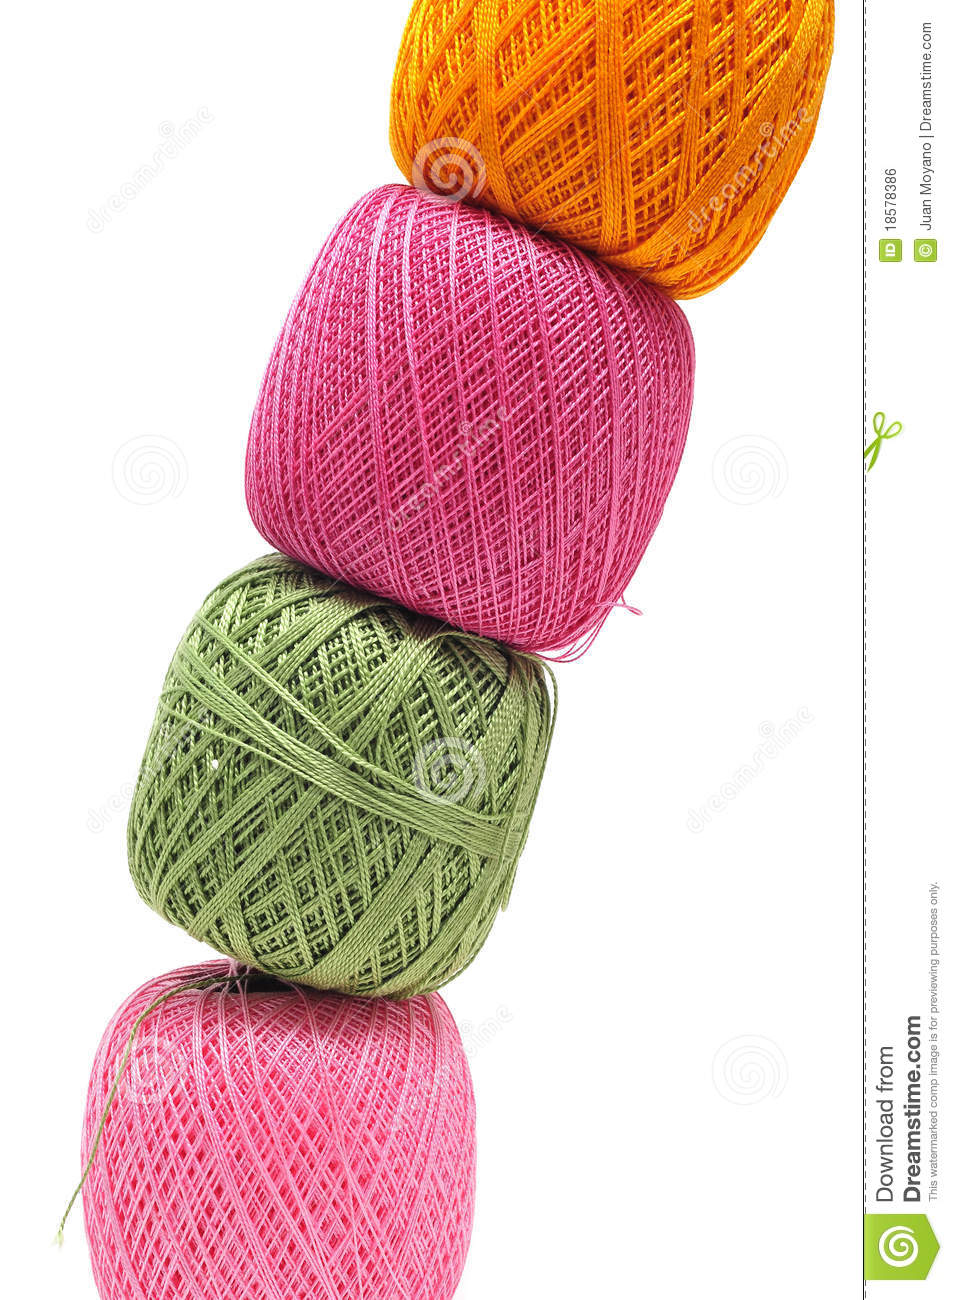 Crocheting Thread : Crochet Thread Royalty Free Stock Image - Image: 18578386